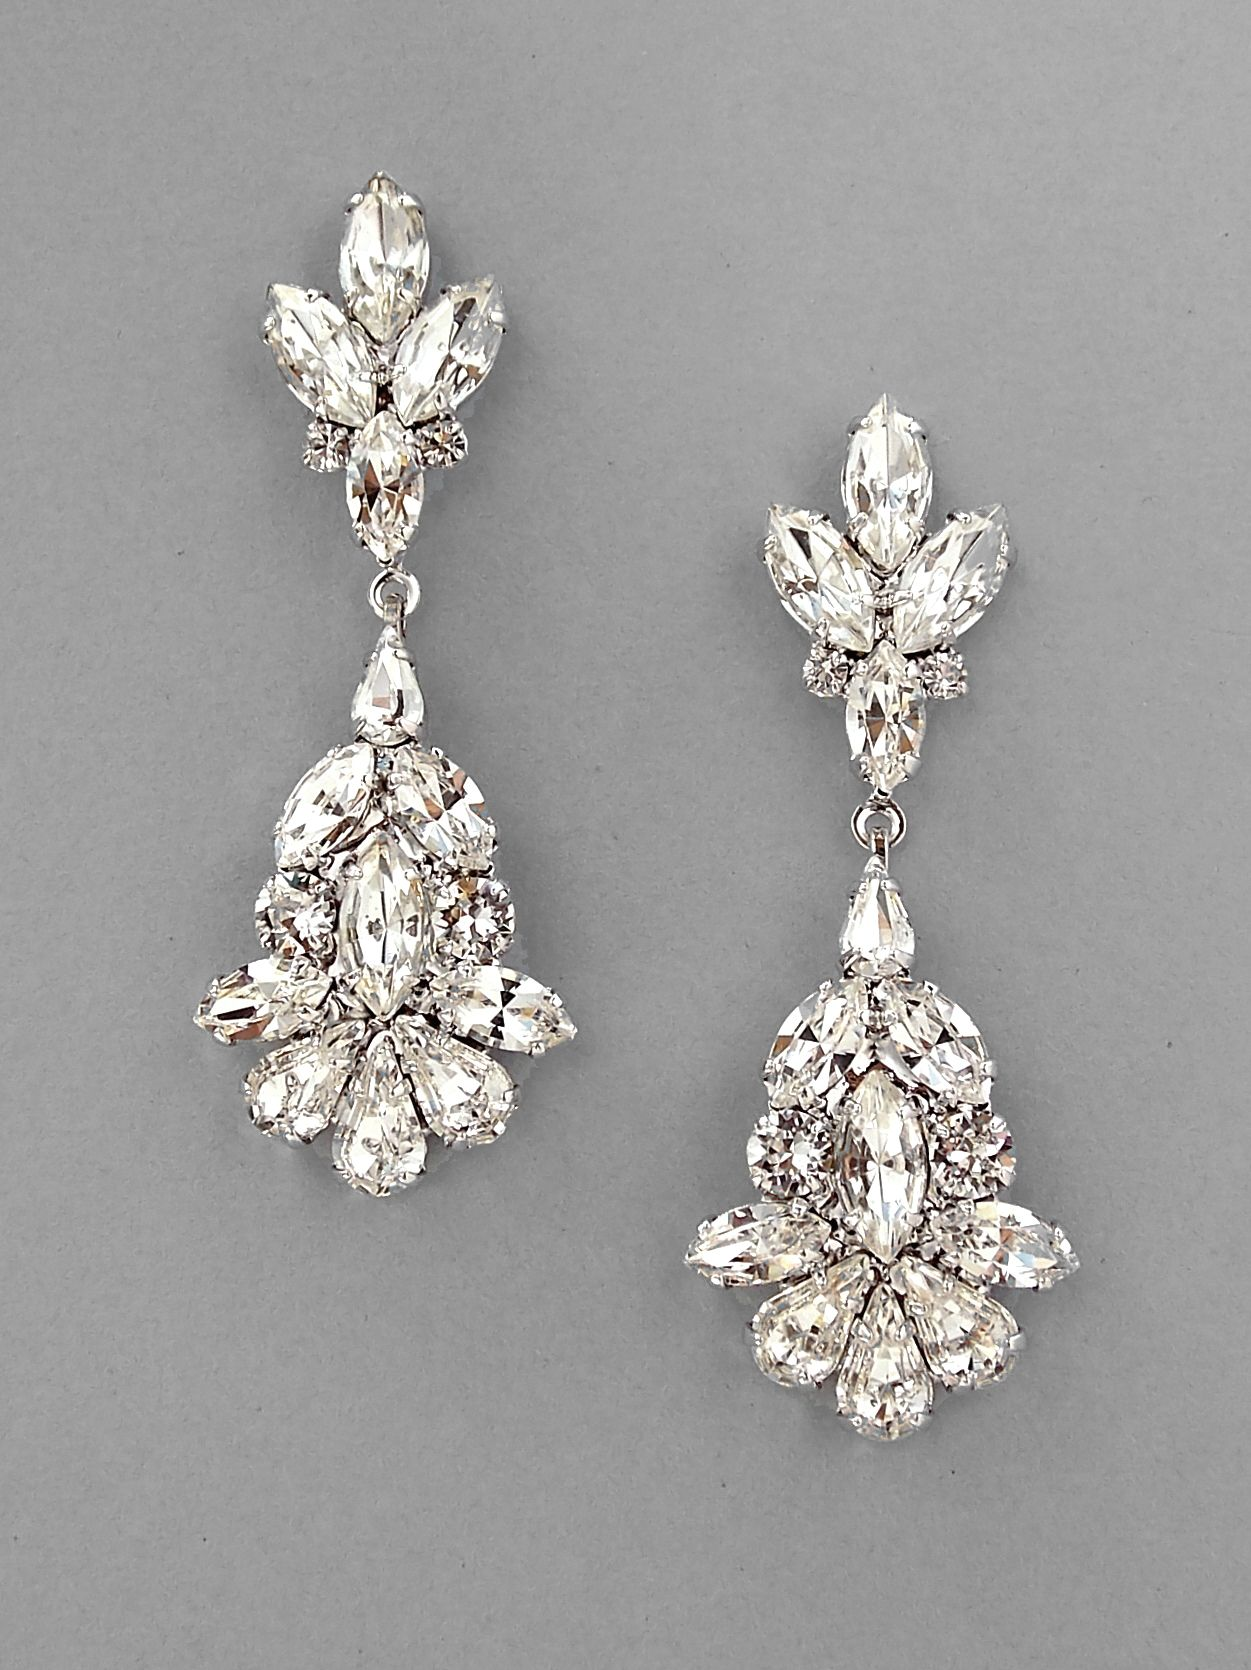 Camille chandelier crystal teardrop earrings compliments bridal jewelry including wedding earrings bracelets necklaces and hair accessories created with swarovski crystals pearls and silver rhodium arubaitofo Images